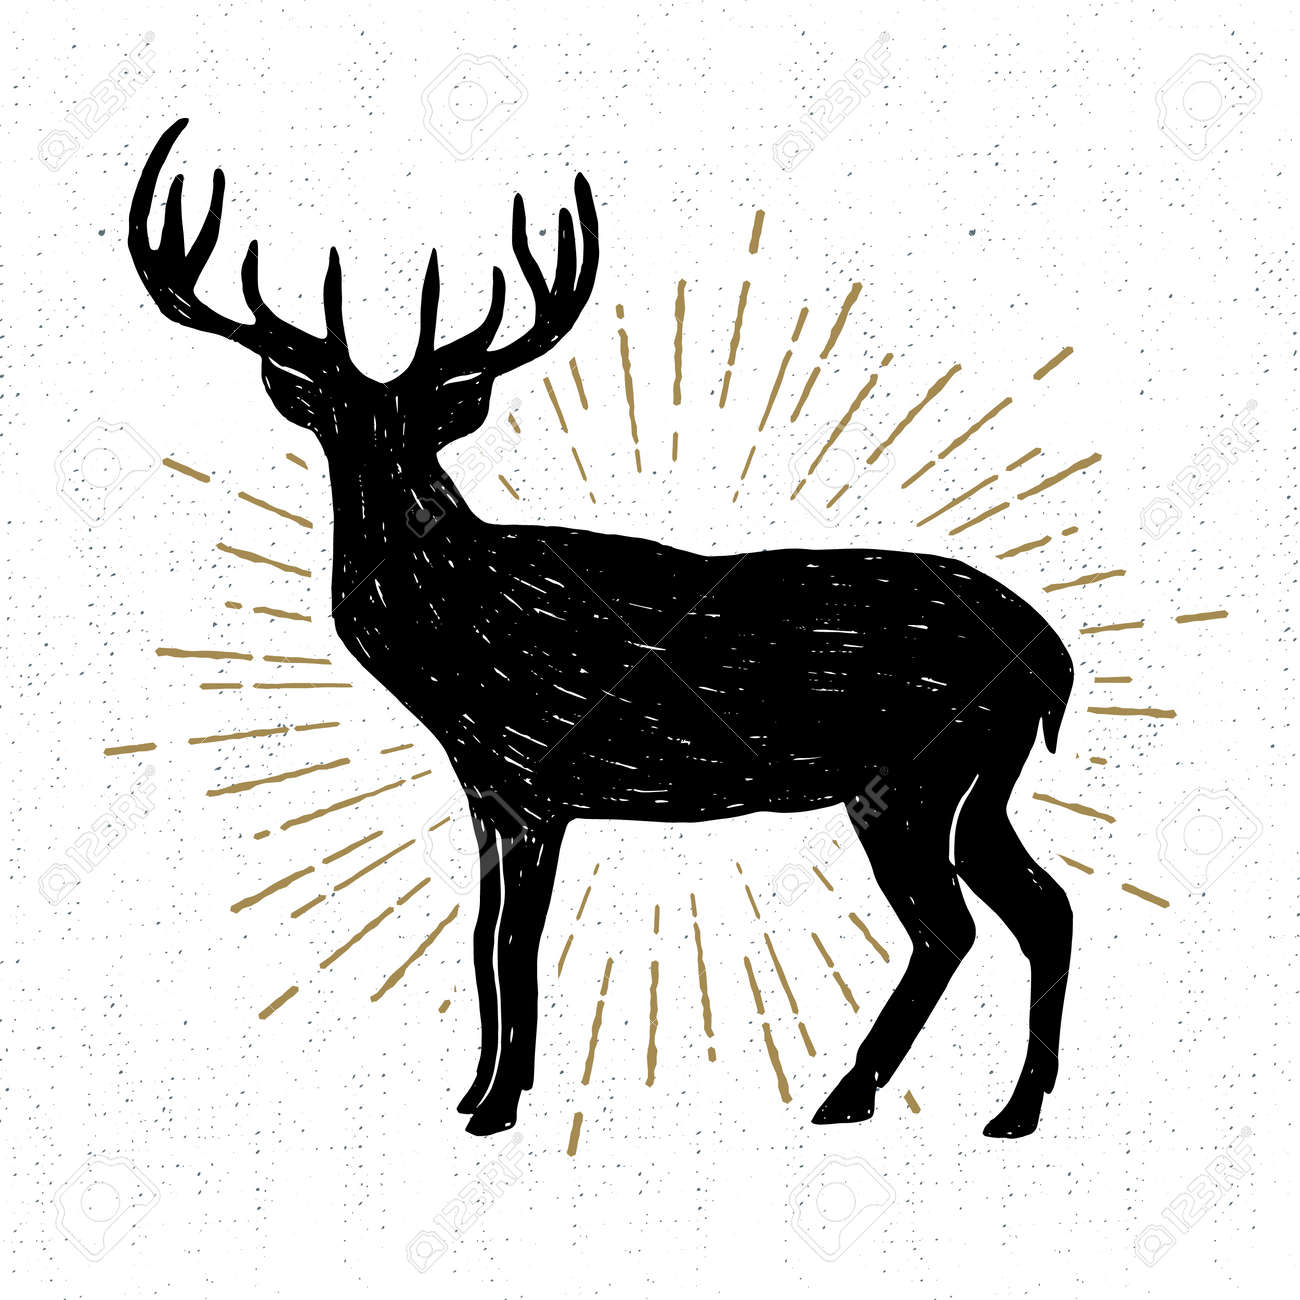 Hand drawn vintage icon with a textured deer vector illustration. - 55803248